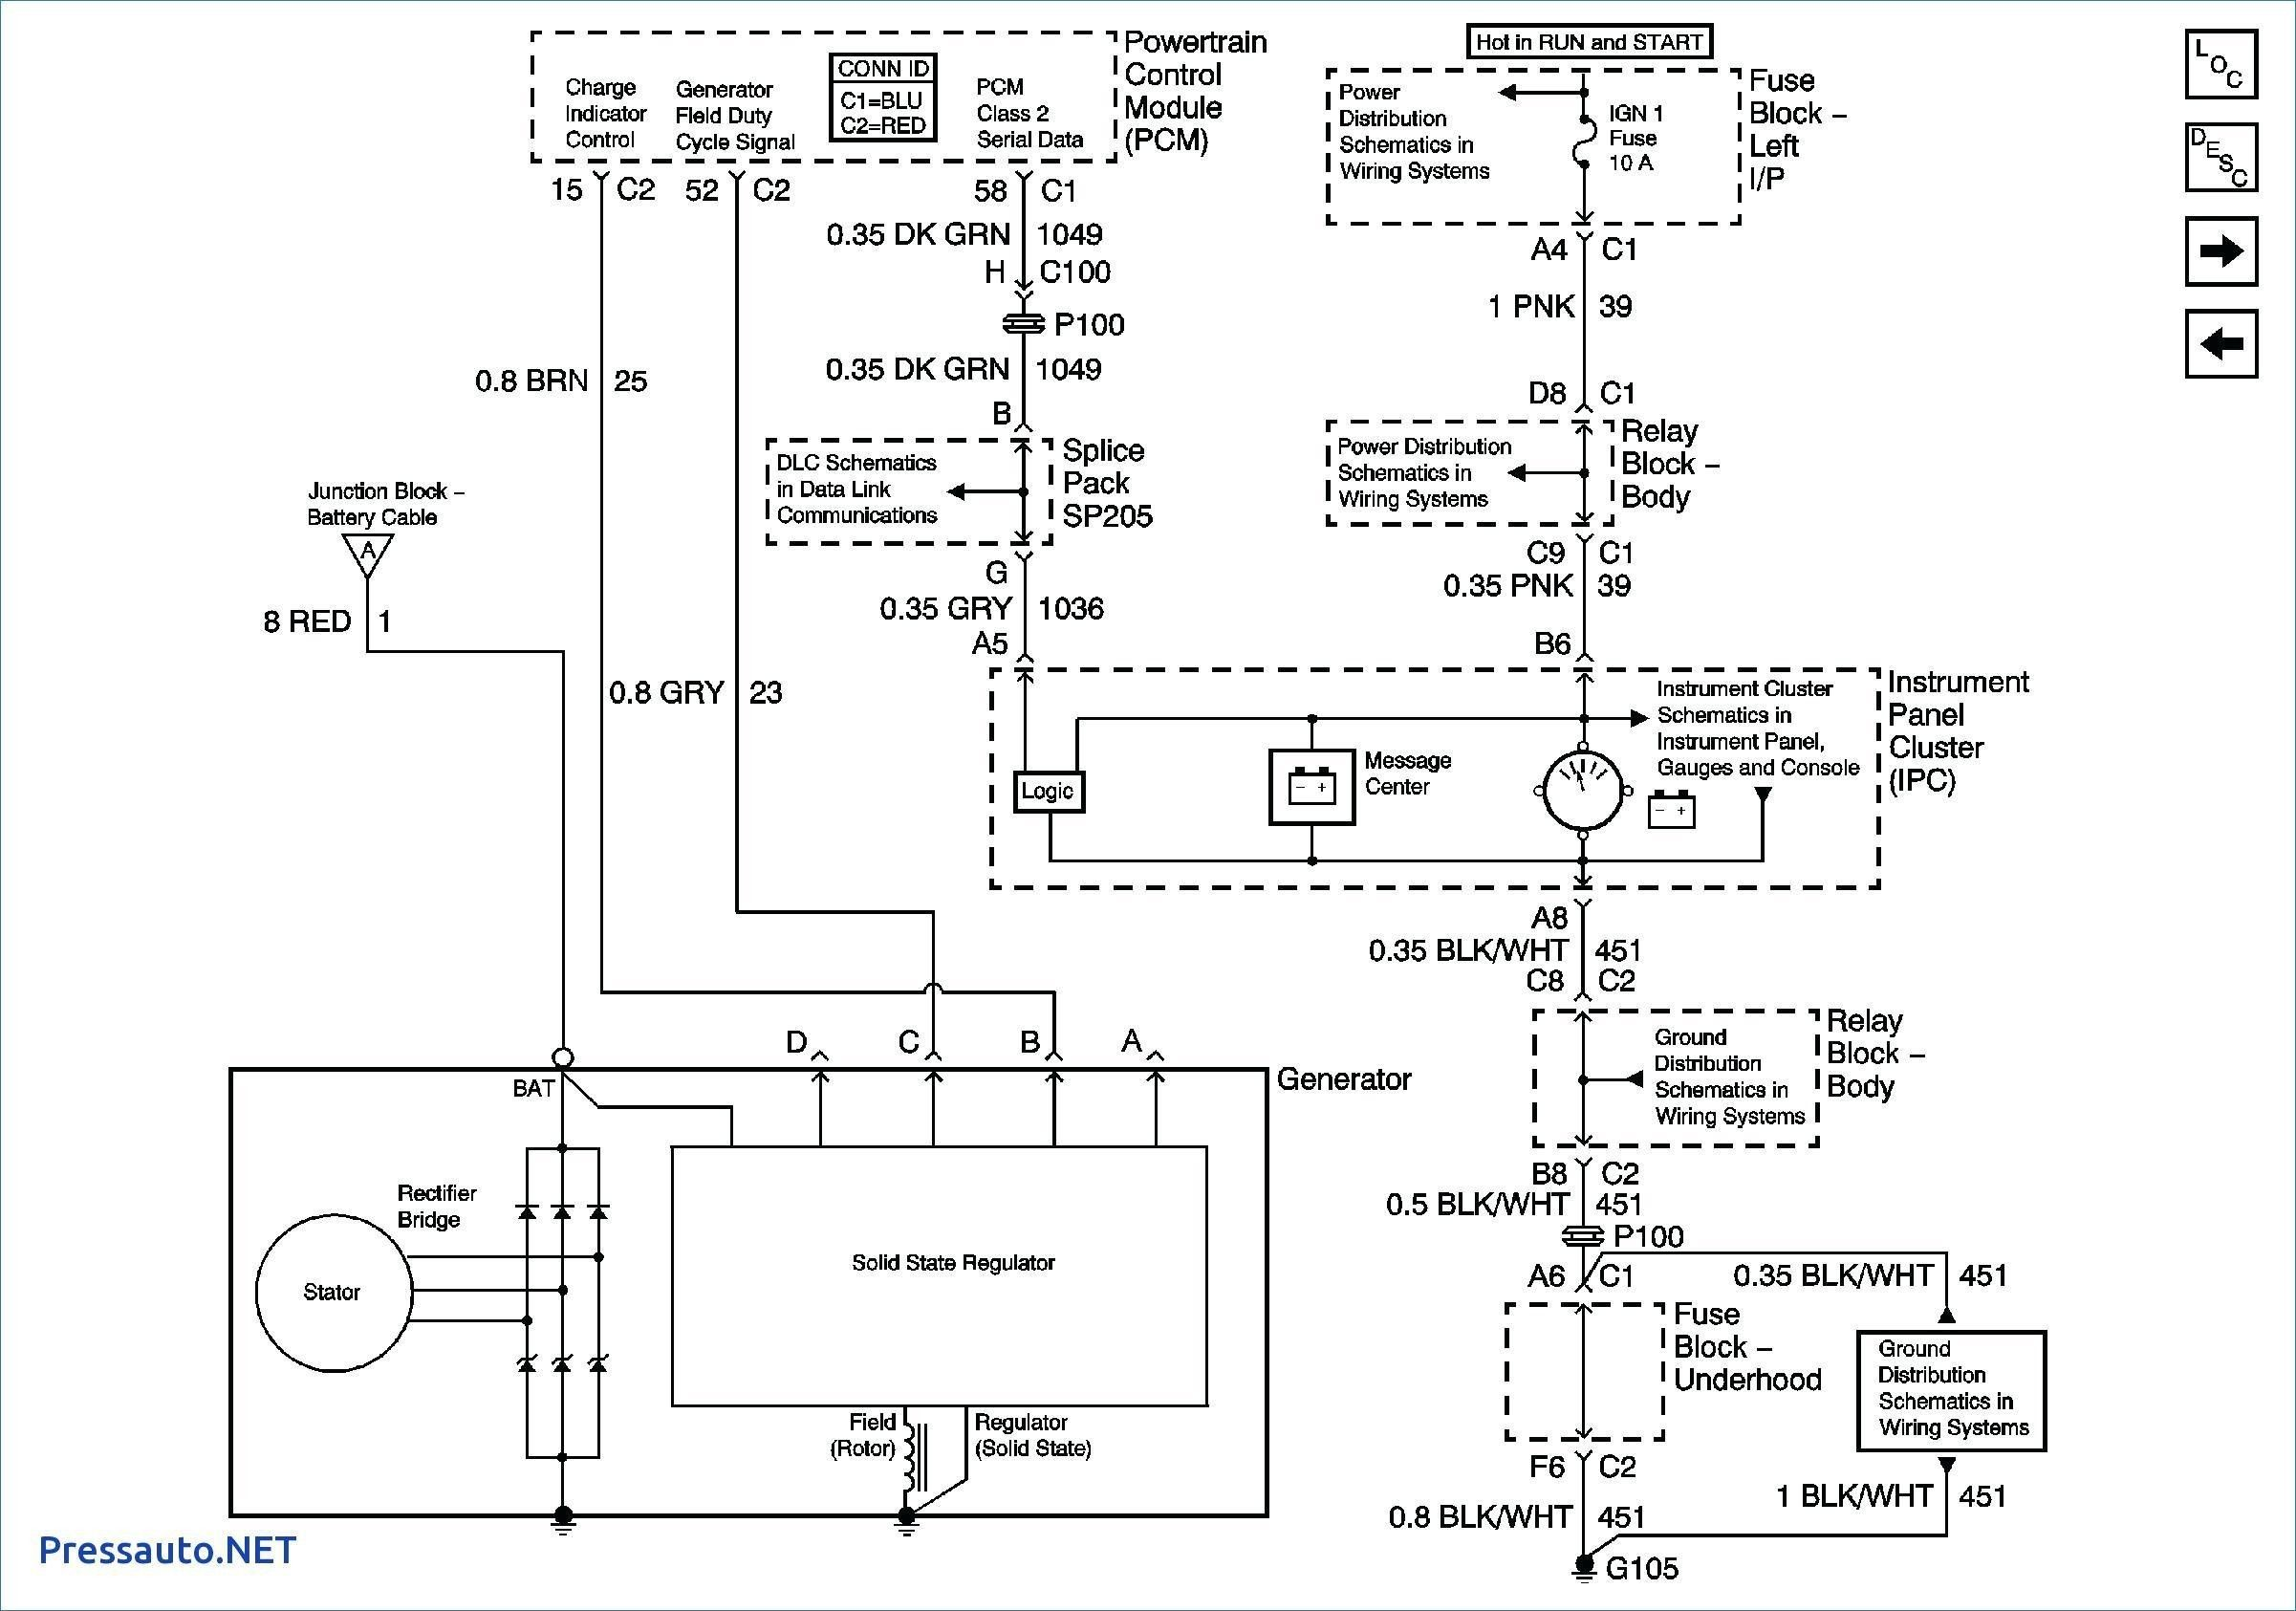 New Wiring Diagram Garage Door Opener Sensors Diagram Diagramsample Diagramtemplate Wiringdiagram Diagramchar Electrical Wiring Diagram Alternator Diagram